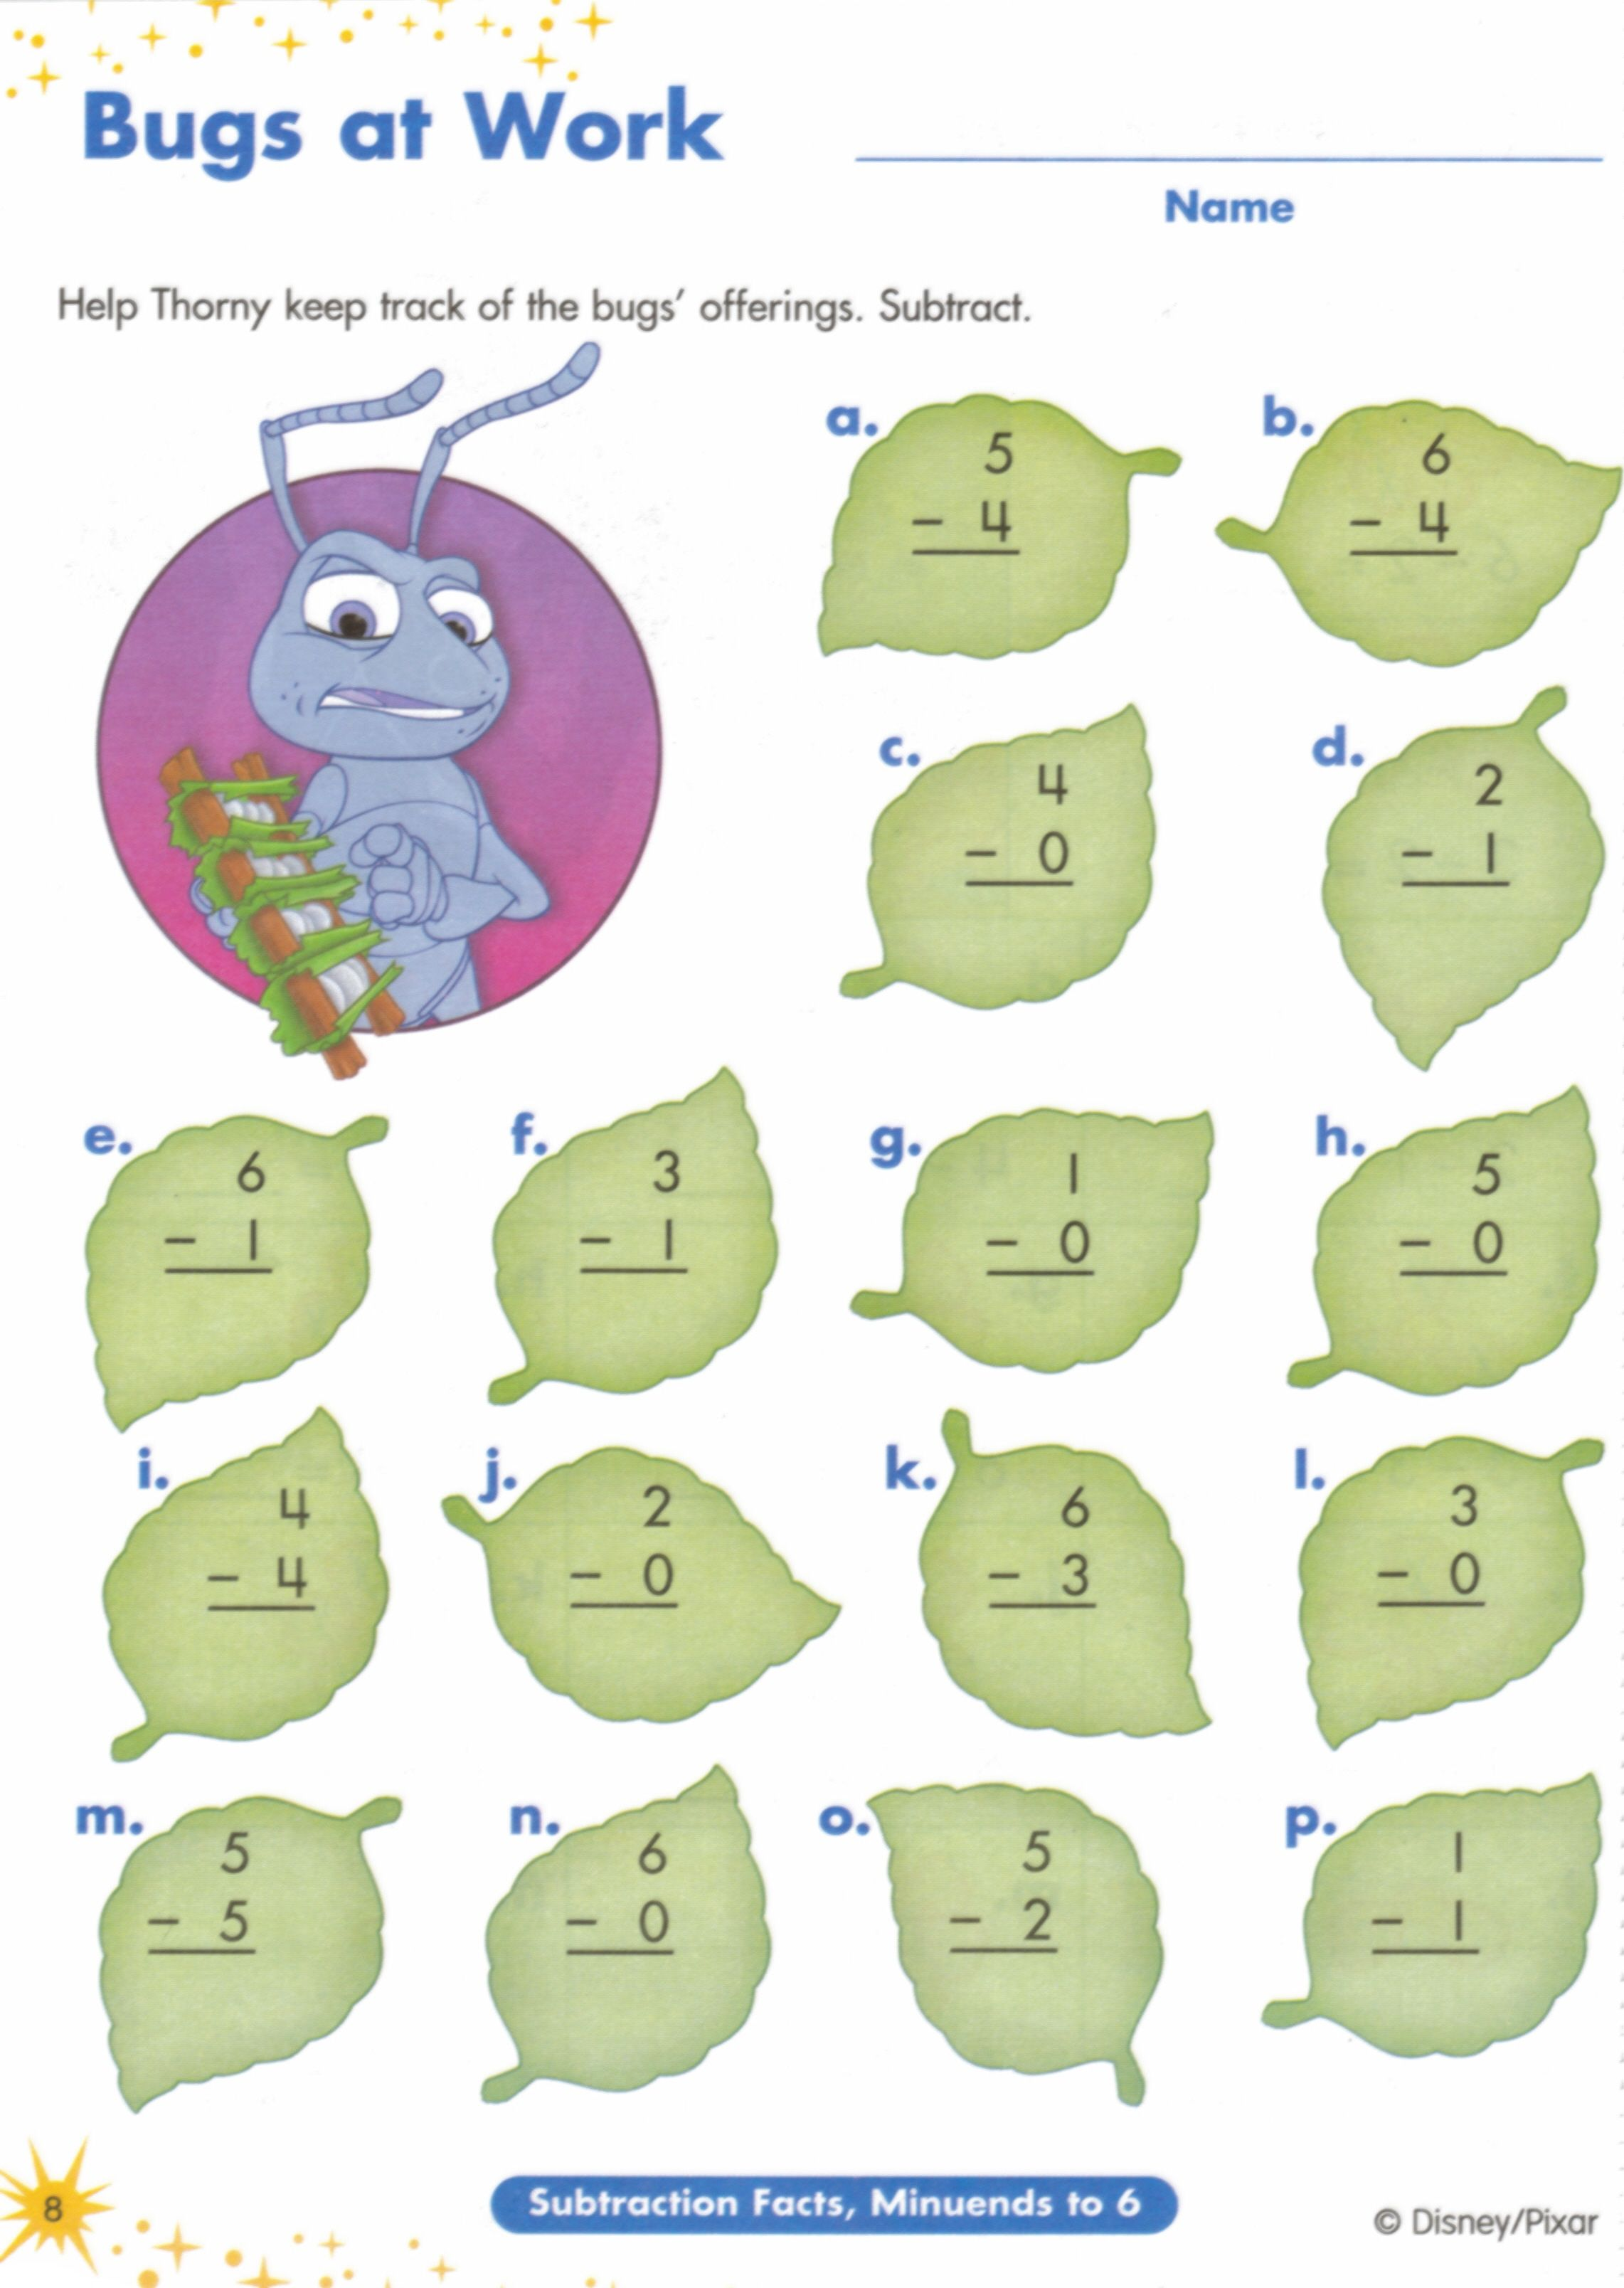 Weirdmailus  Gorgeous  Images About Worksheets On Pinterest  Fun Facts For Kids  With Fascinating  Images About Worksheets On Pinterest  Fun Facts For Kids Earth Day Worksheets And Jungles With Delightful Hiragana Worksheet Also Counting Nickels Worksheets In Addition St Grade Math Worksheets Word Problems And Multi Step Equation Worksheets As Well As Text Structure Worksheets Th Grade Additionally Poetry Worksheets High School From Pinterestcom With Weirdmailus  Fascinating  Images About Worksheets On Pinterest  Fun Facts For Kids  With Delightful  Images About Worksheets On Pinterest  Fun Facts For Kids Earth Day Worksheets And Jungles And Gorgeous Hiragana Worksheet Also Counting Nickels Worksheets In Addition St Grade Math Worksheets Word Problems From Pinterestcom